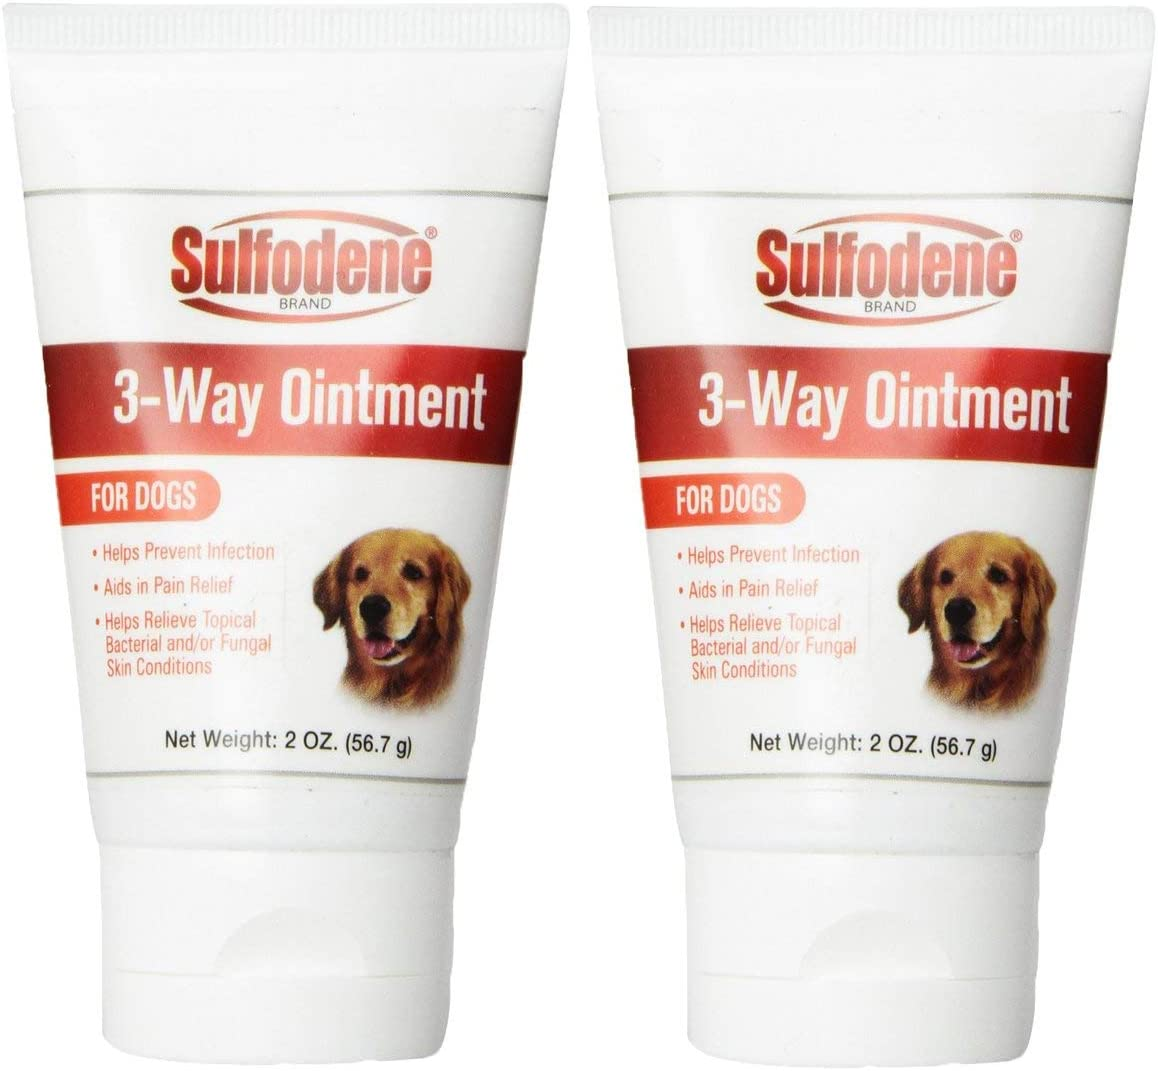 Sulfodene 3-Way Ointment for Max 55% OFF 2-Pack OFFicial mail order 4oz Dogs